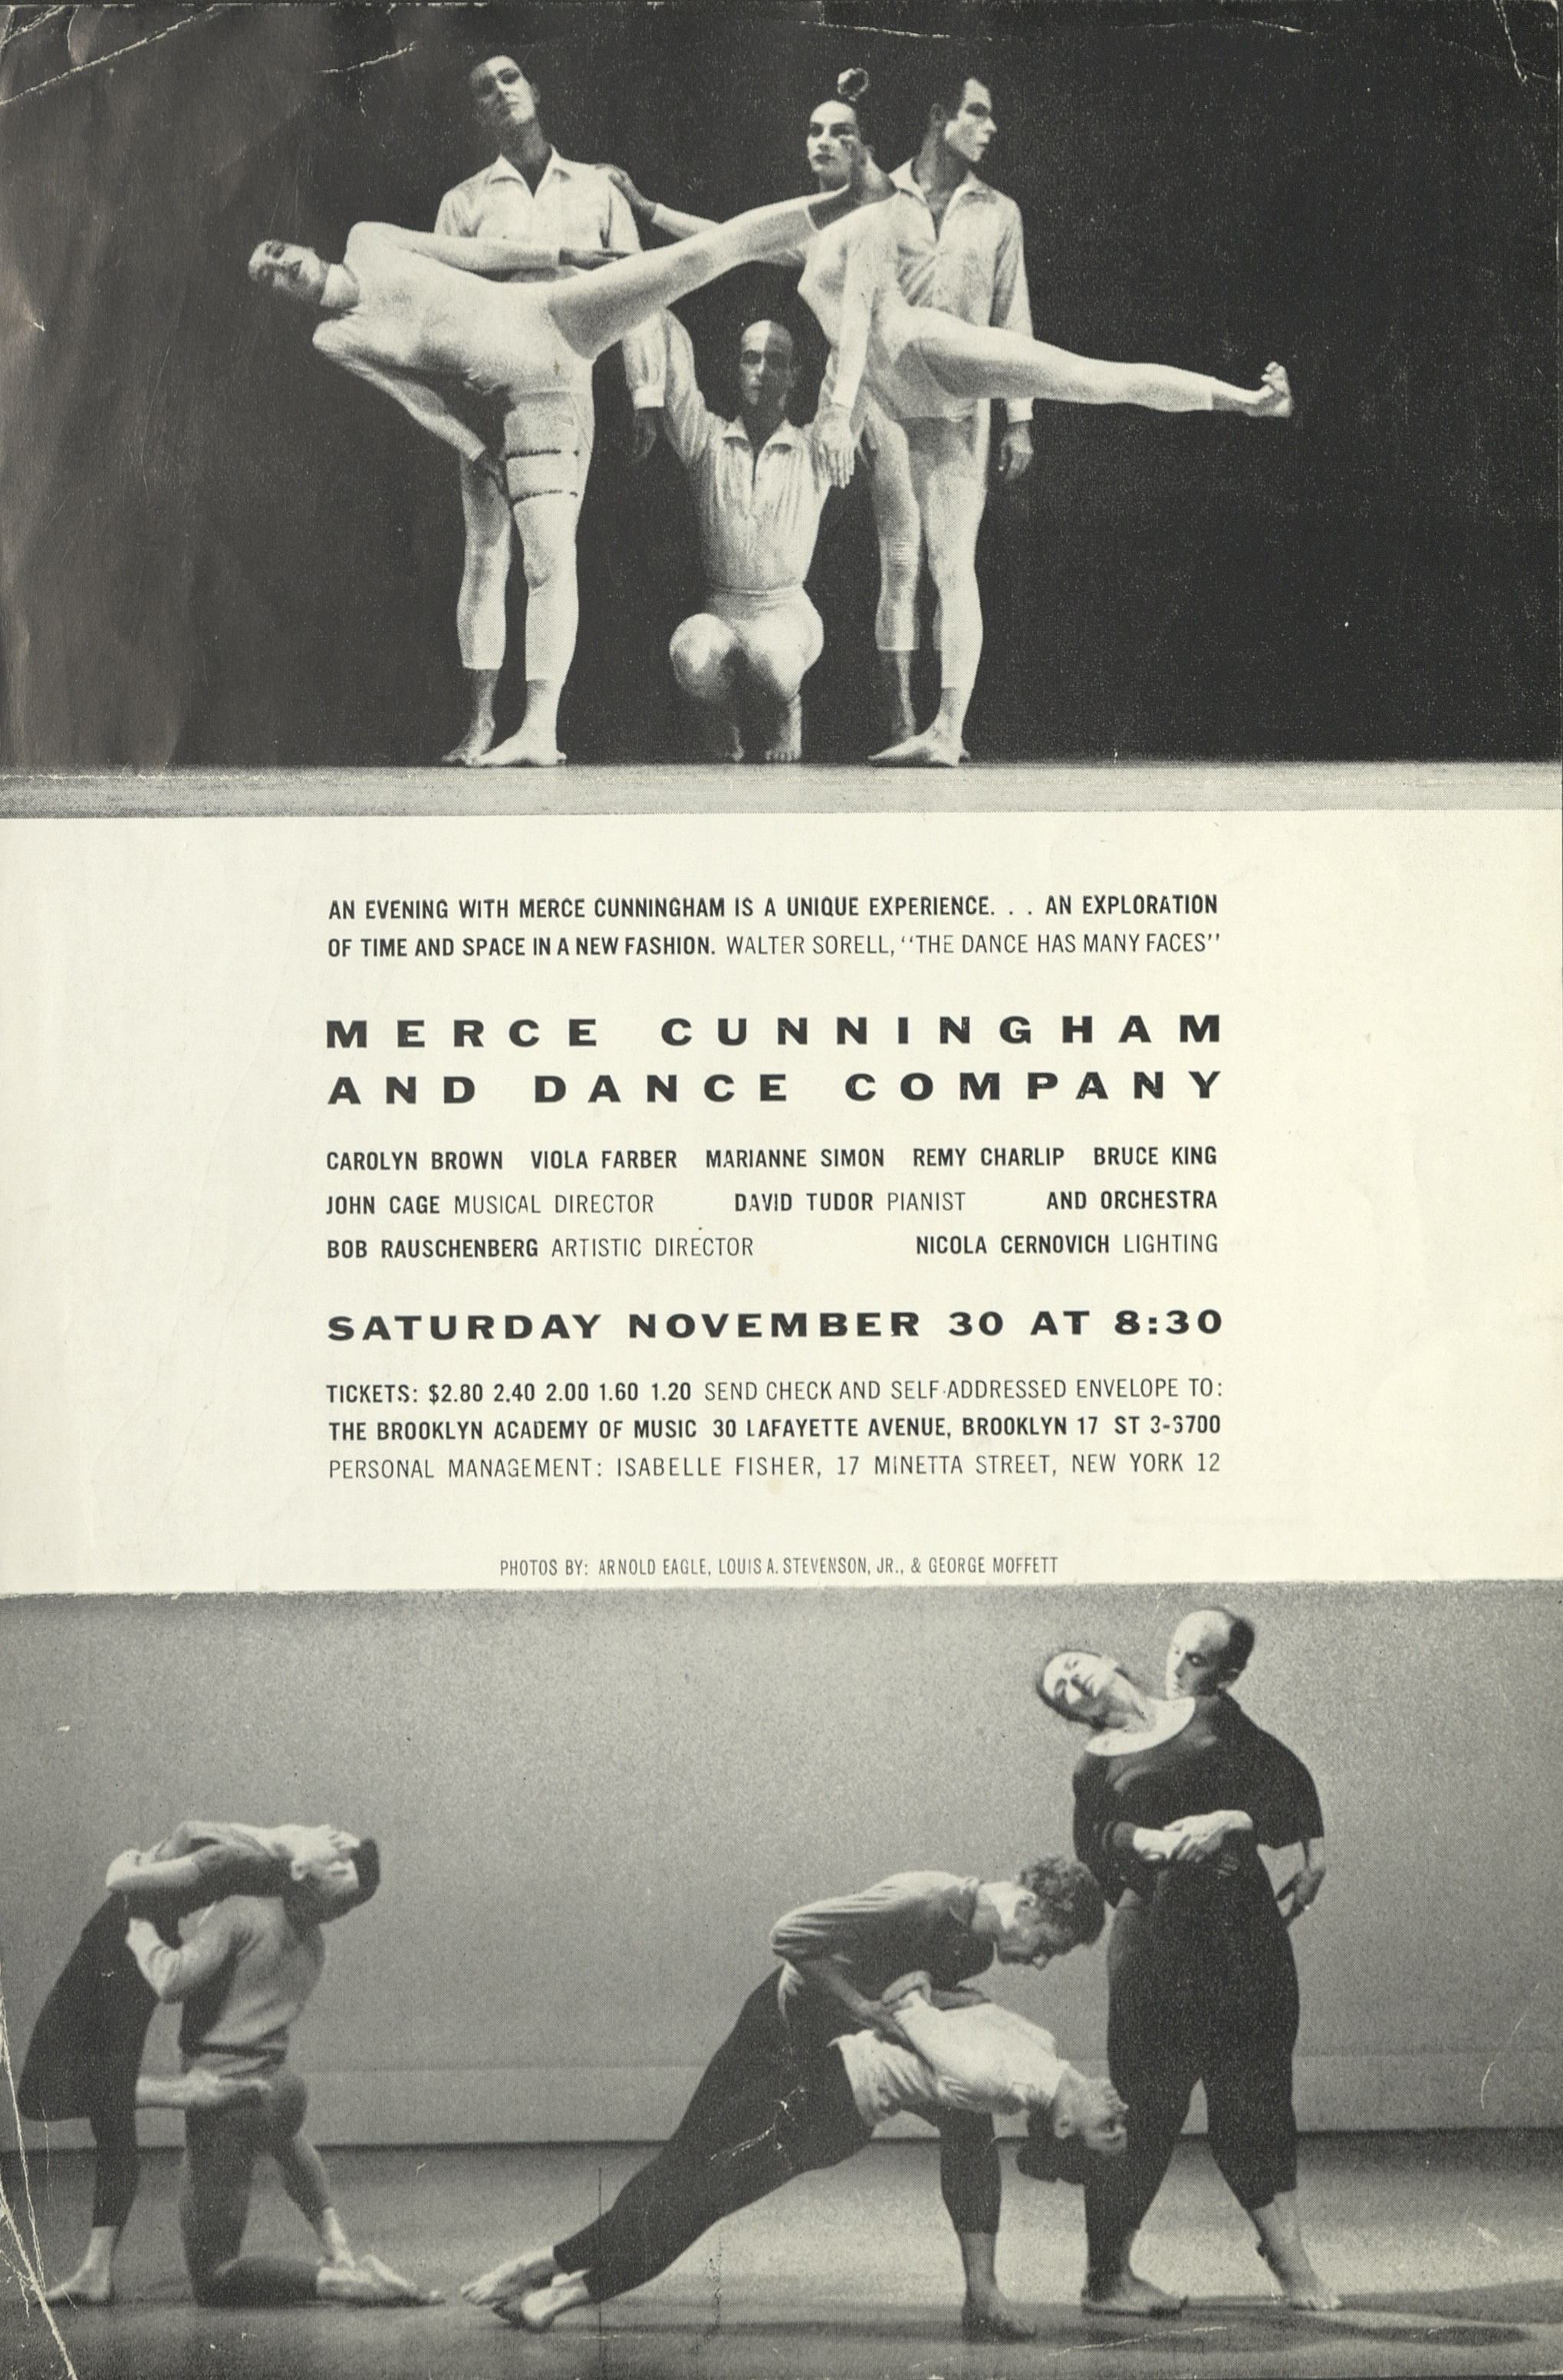 Merce Cunningham and Dance Company, The Brooklyn Academy of Music, New York, 1957; Archiv der Avantgarden, Staatliche Kunstsammlungen Dresden